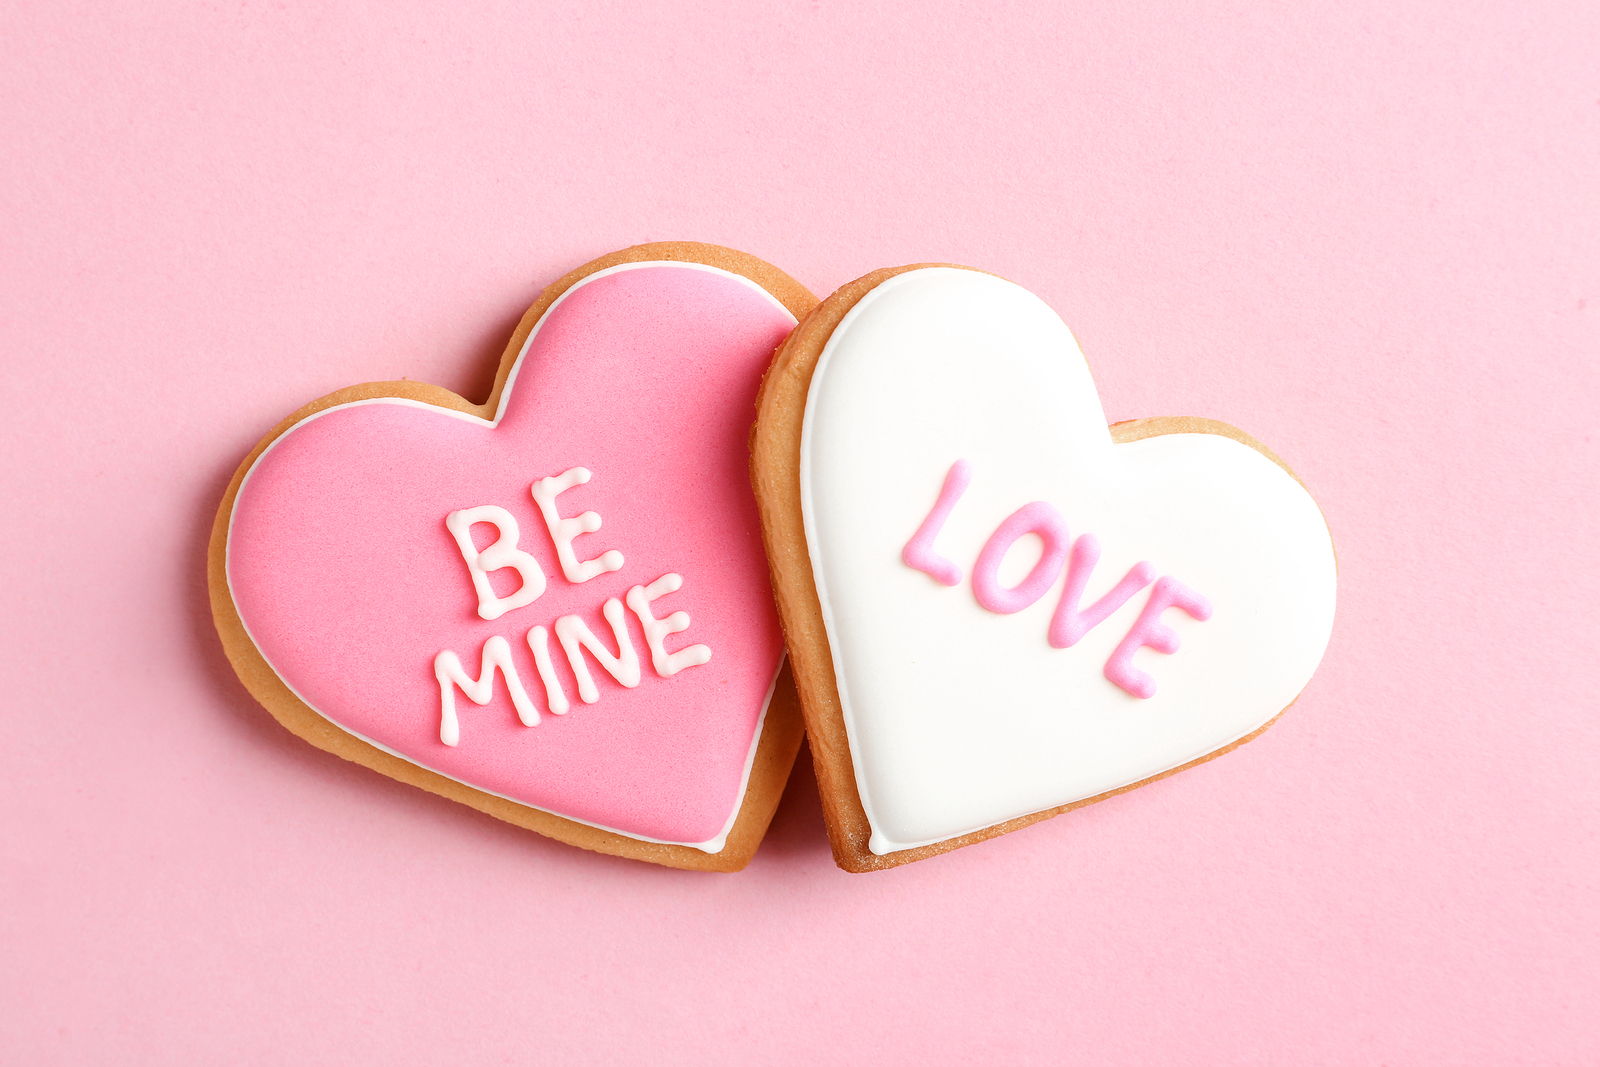 Decorated Heart Shaped Cookies On Color Background, Top View. Va